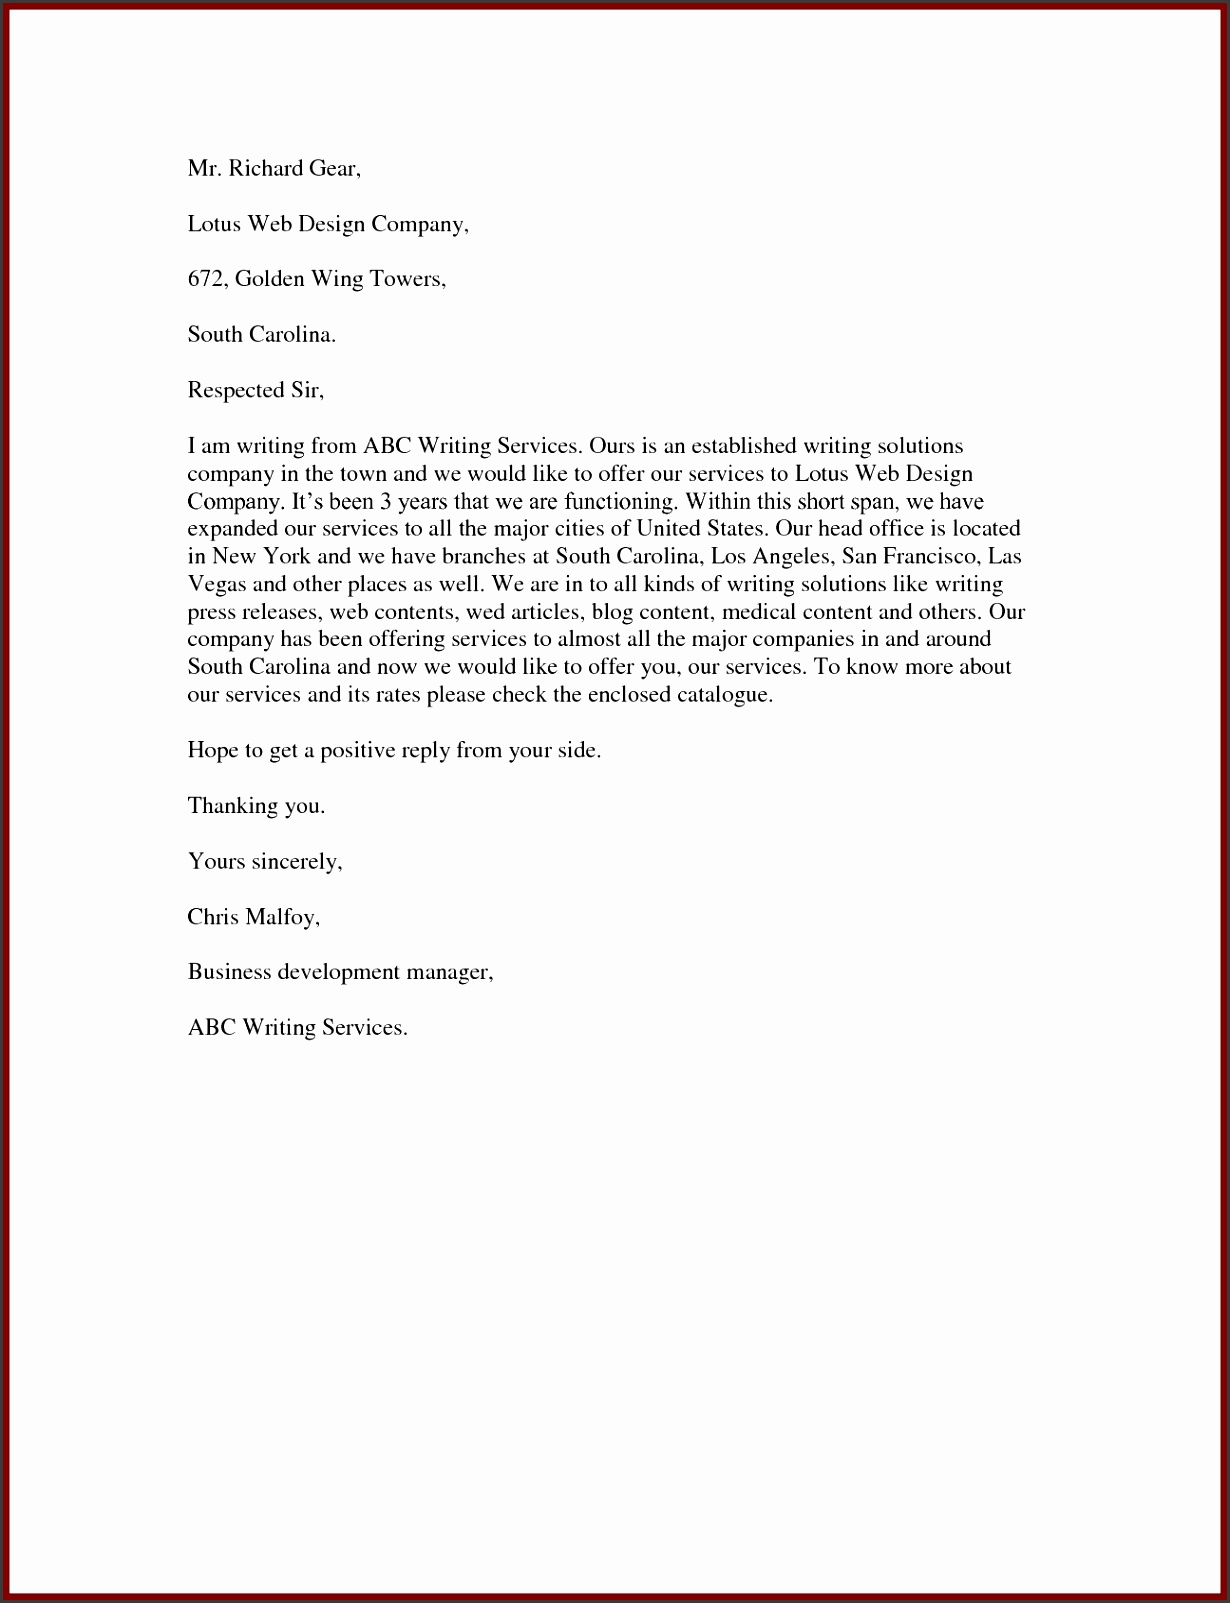 Sample Proposal Letter To fer Services